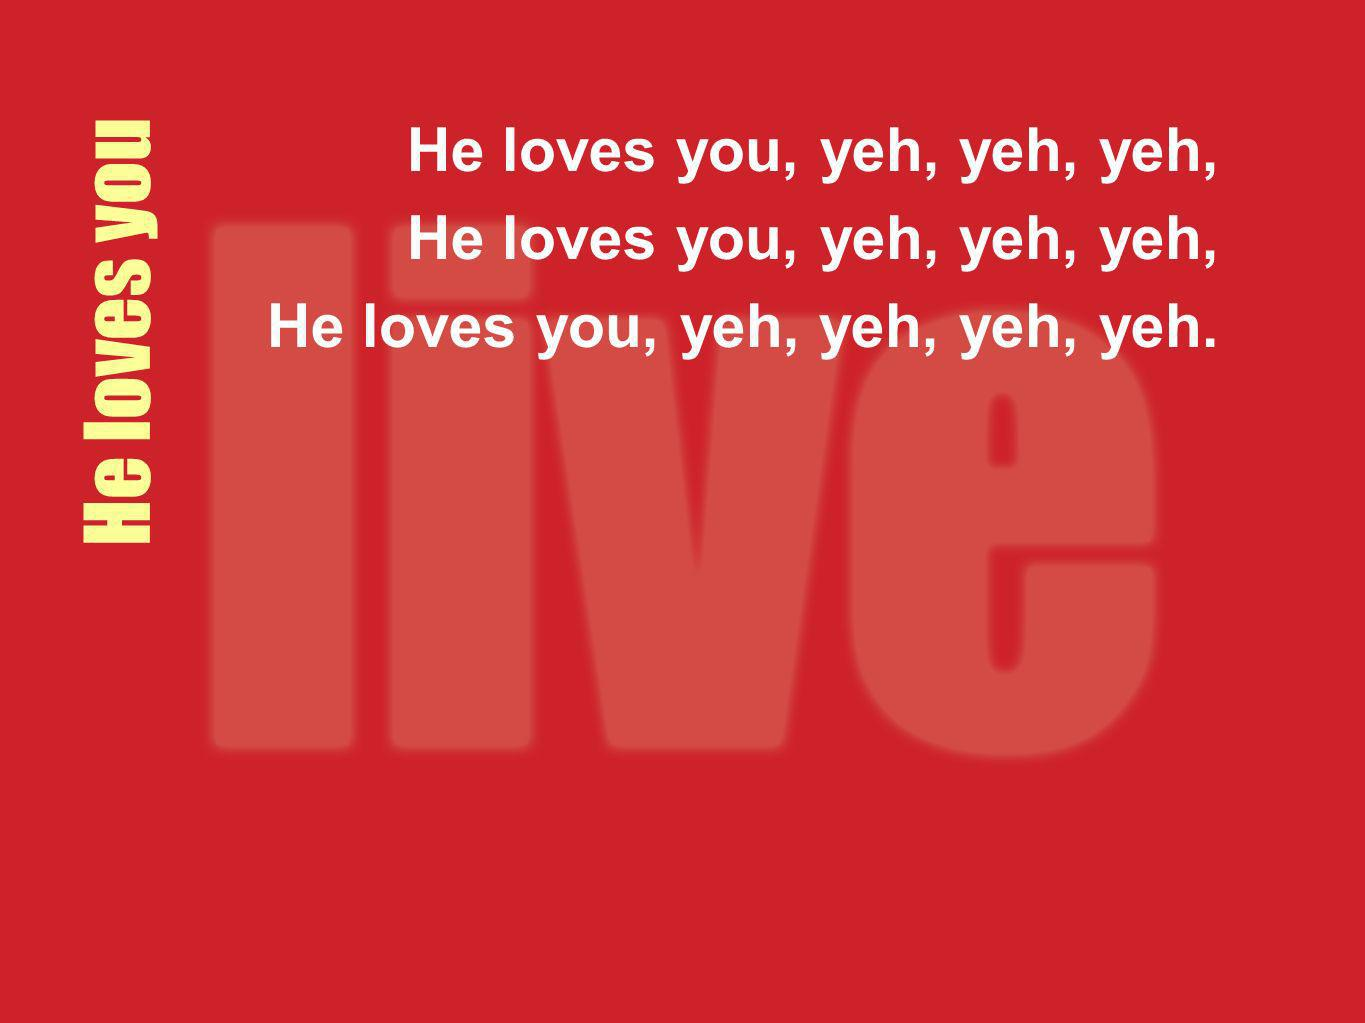 He loves you He loves you, yeh, yeh, yeh,